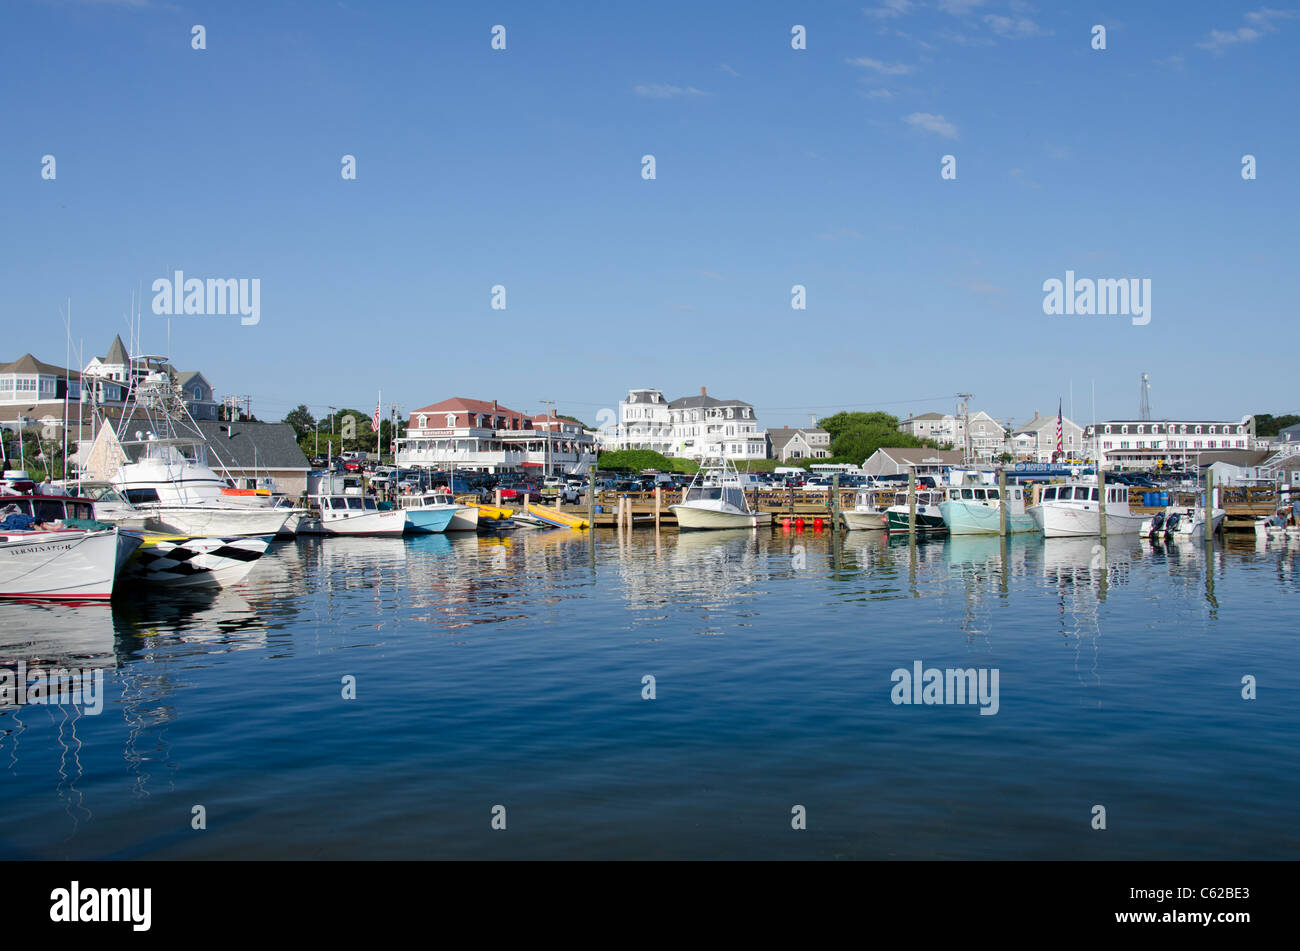 Rhode Island, Block Island (aka New Shoreham). The scenic harbor area of downtown Block Island. Stock Photo